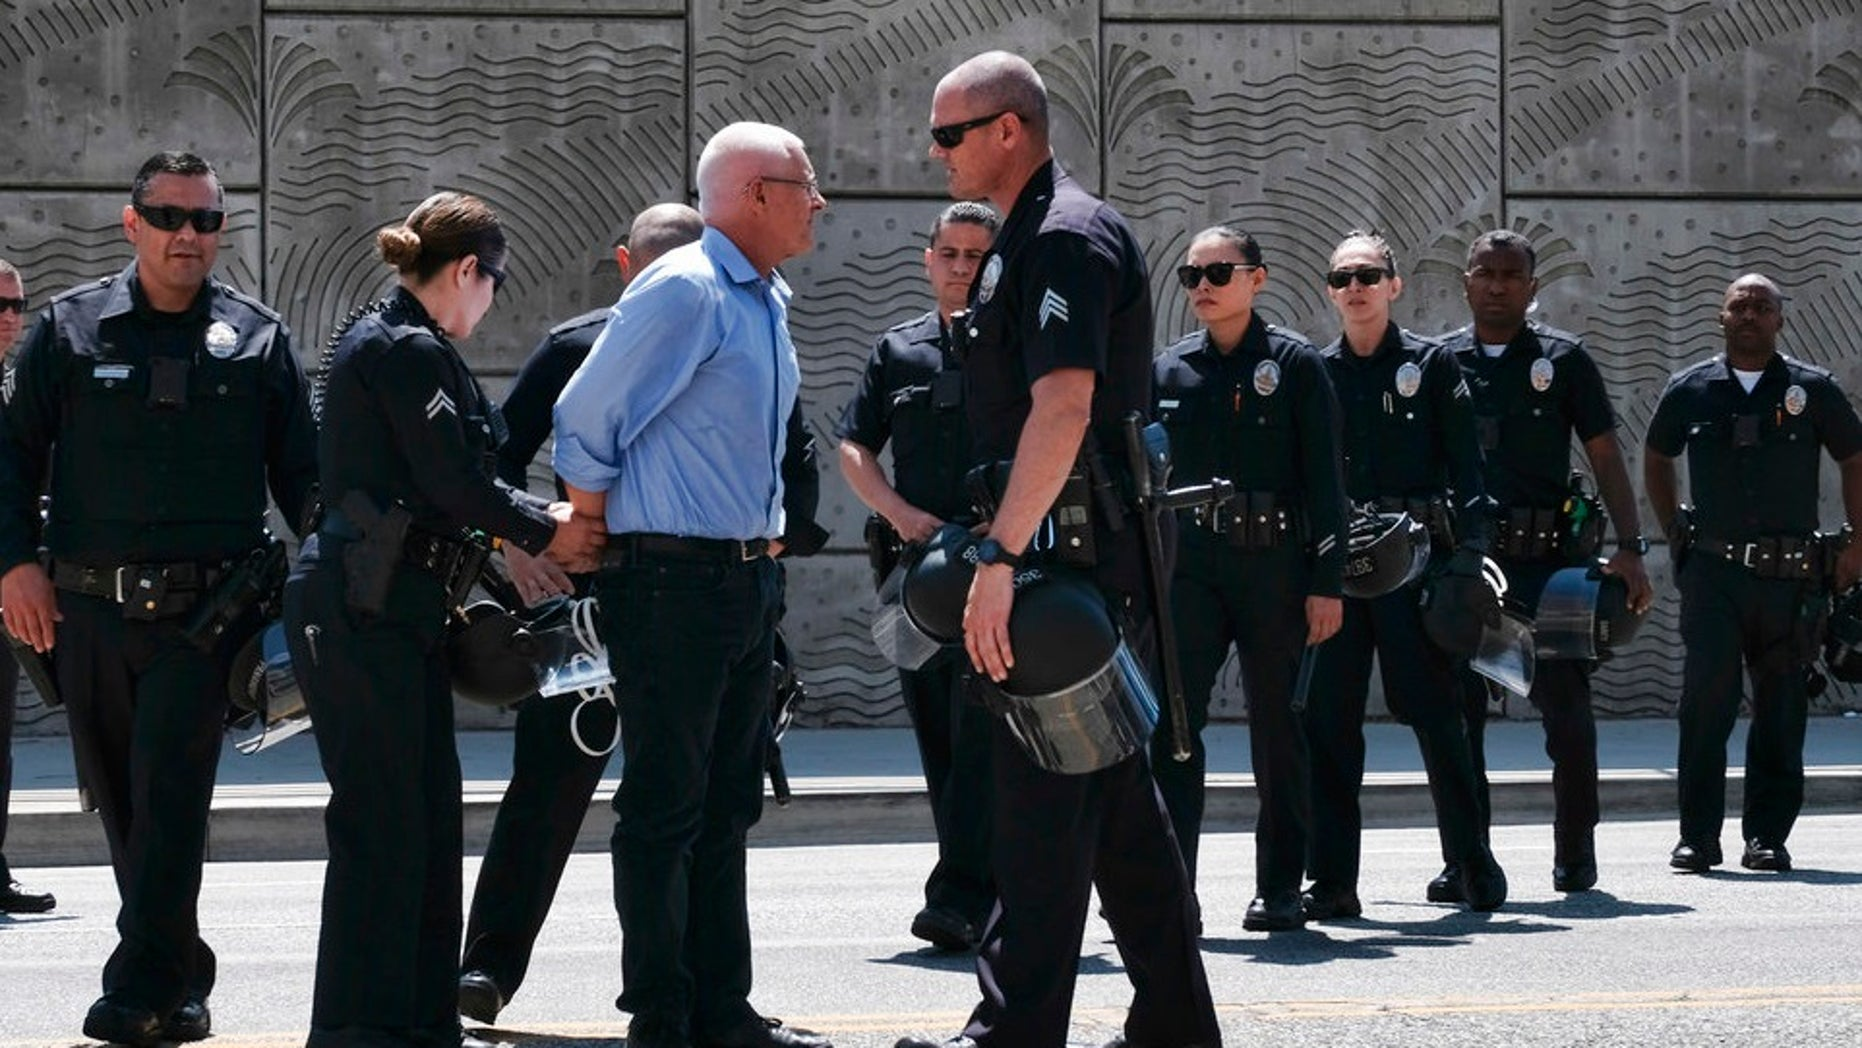 LA City Councilman Mike Bonin is handcuffed after being arrested for blocking entrance to a downtown ICE facility.